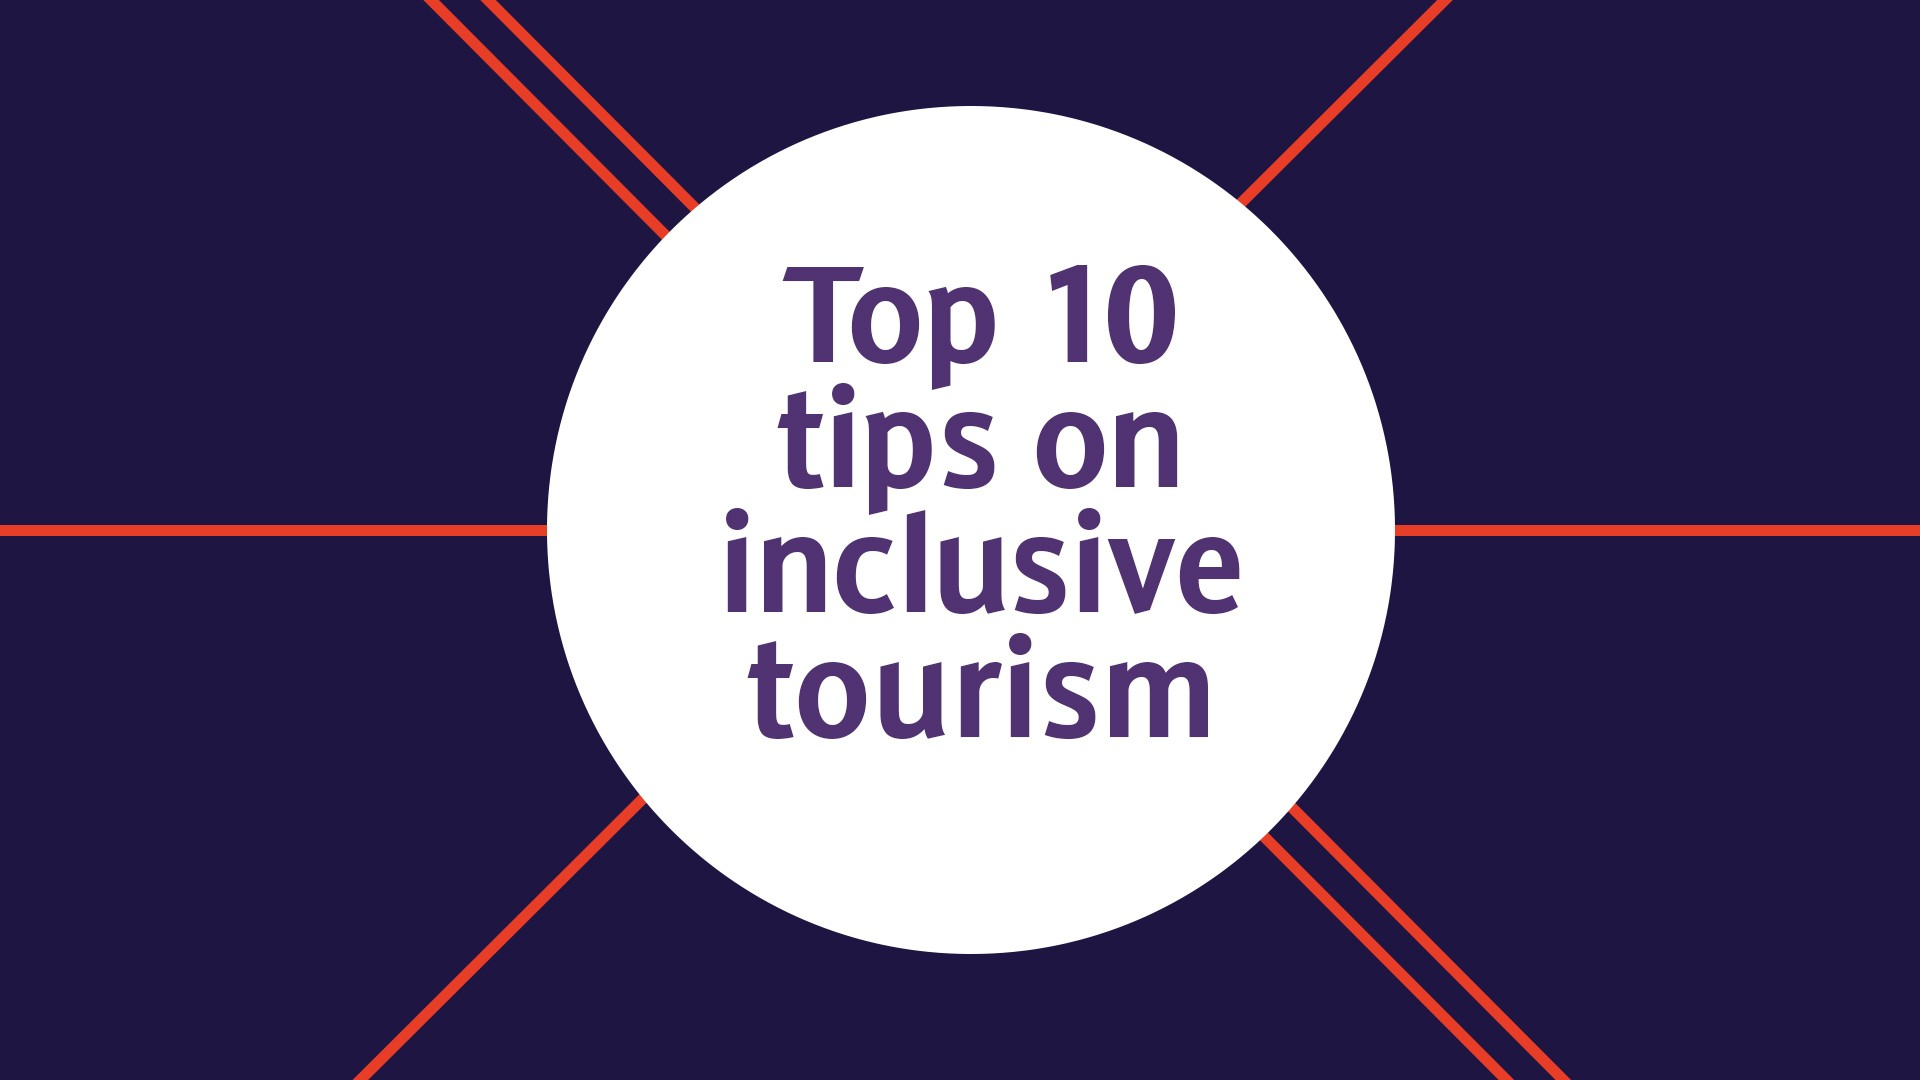 Top 10 tips on inclusive tourism